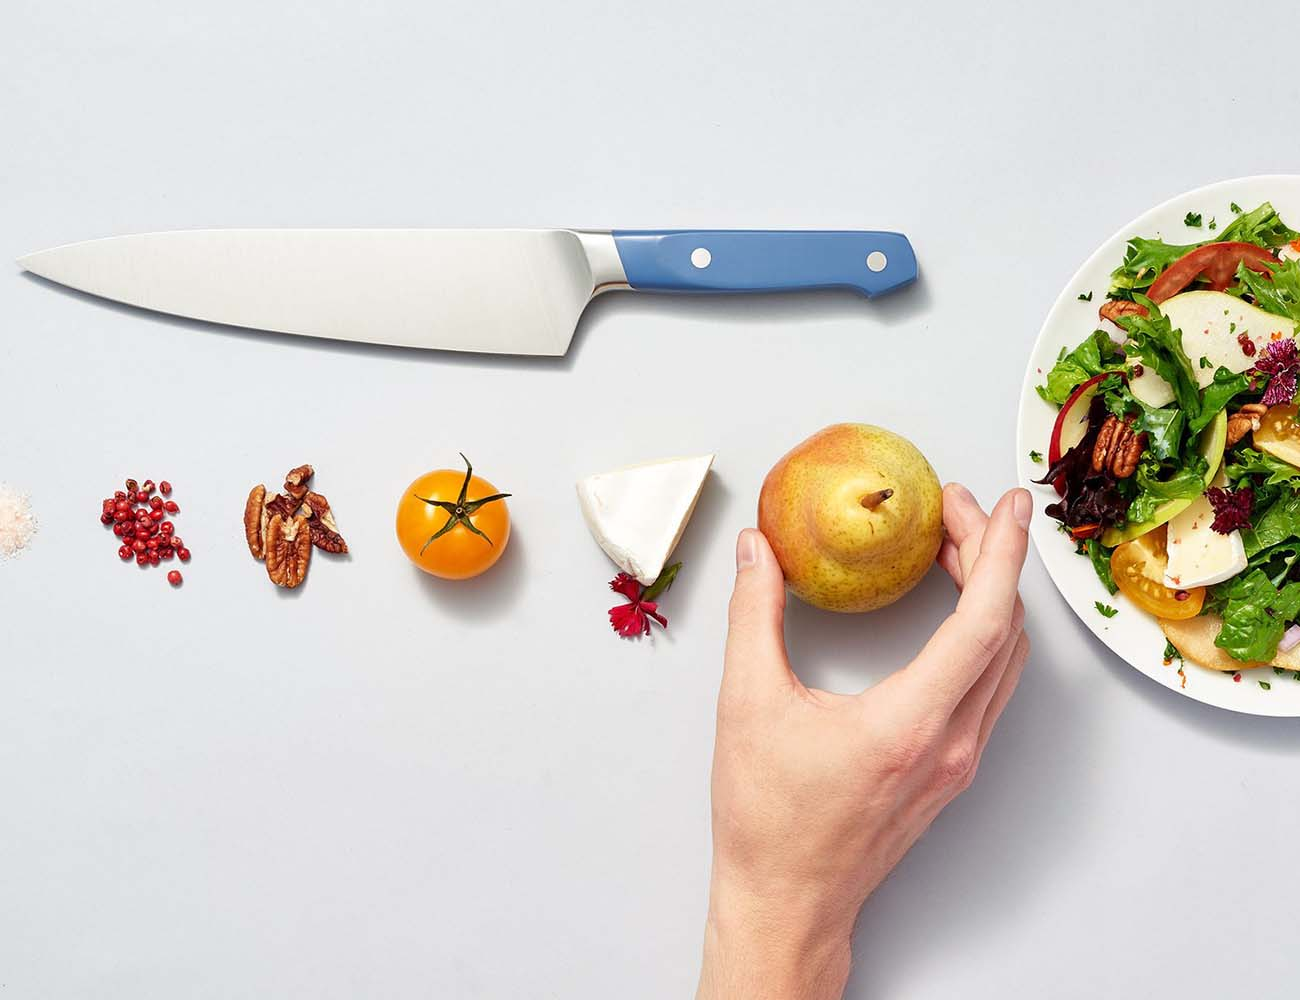 Misen The Versatile And Affordable Kitchen Knife